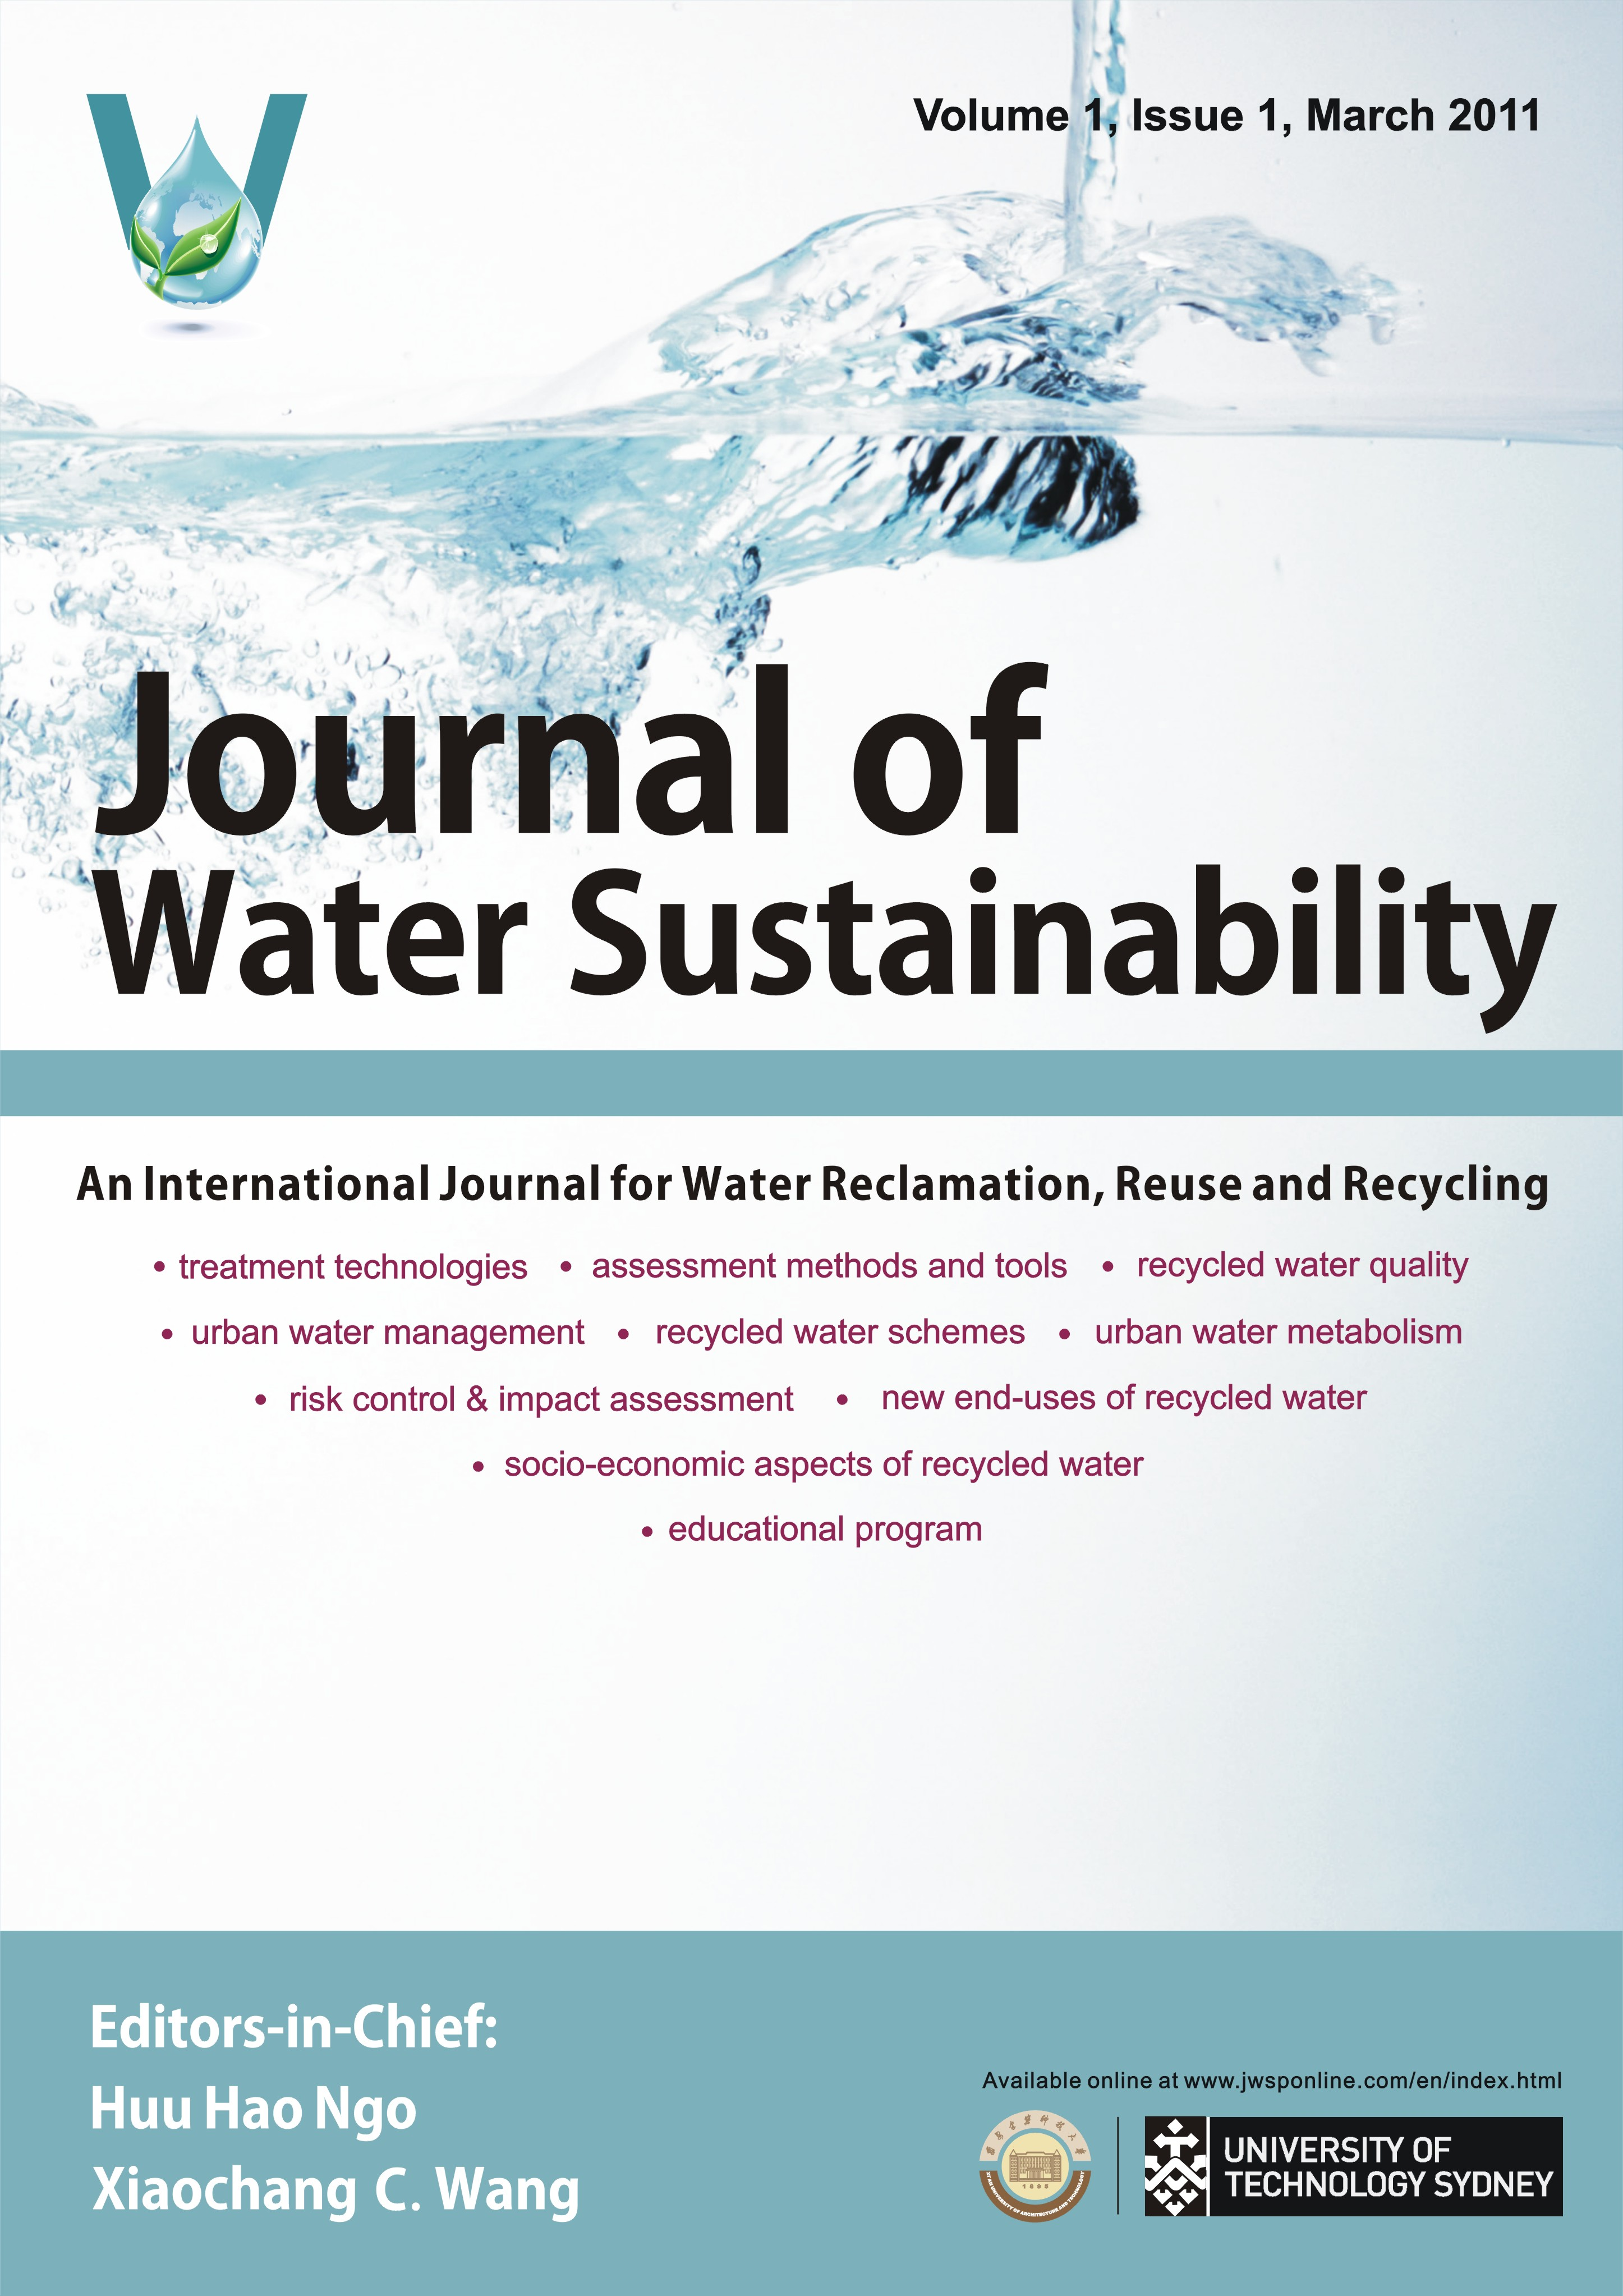 water and wastewater analysis focusing on formaldehyde environmental sciences essay Free sample essay about water quality and environmental health example essay on wastewater focusing on improved water and sanitation for health.